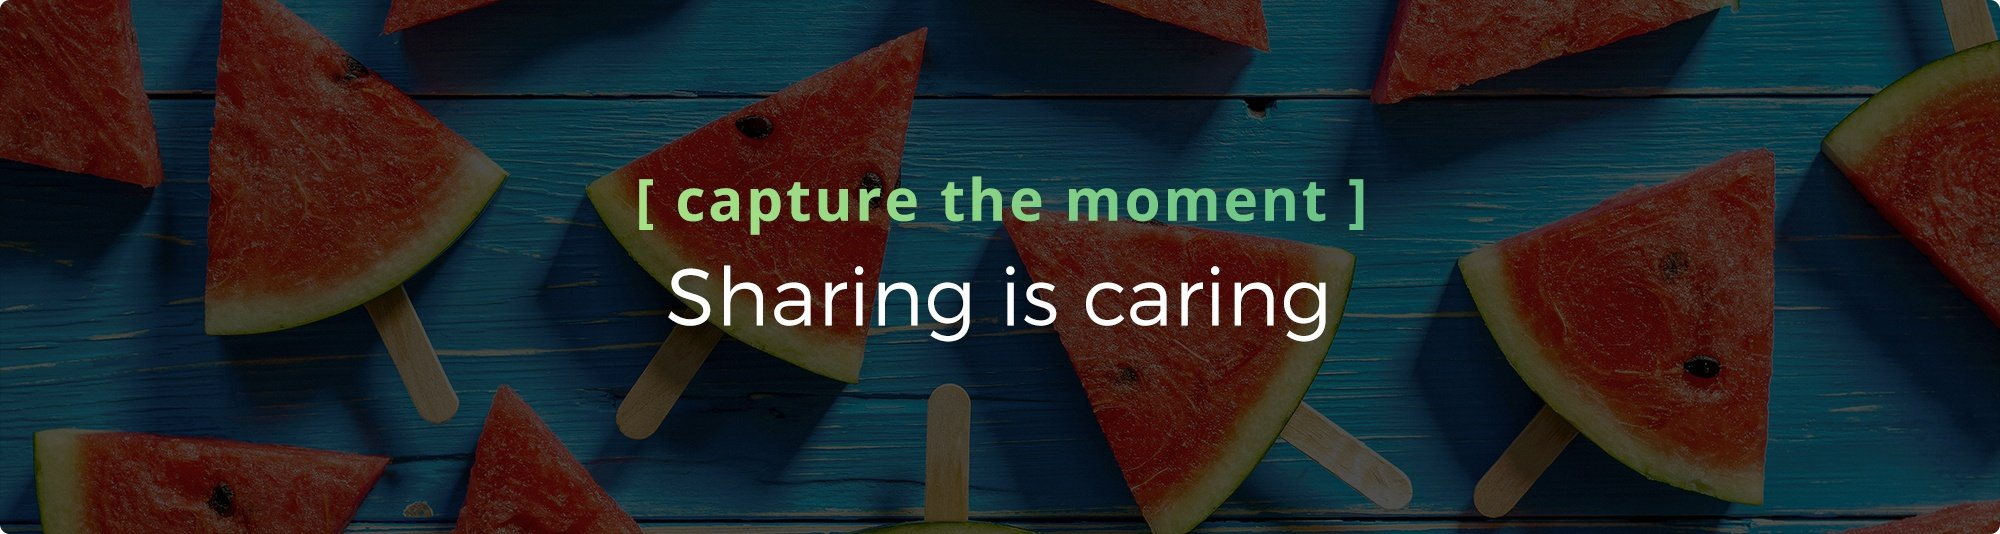 2 Capture and Share Moments Header.jpg